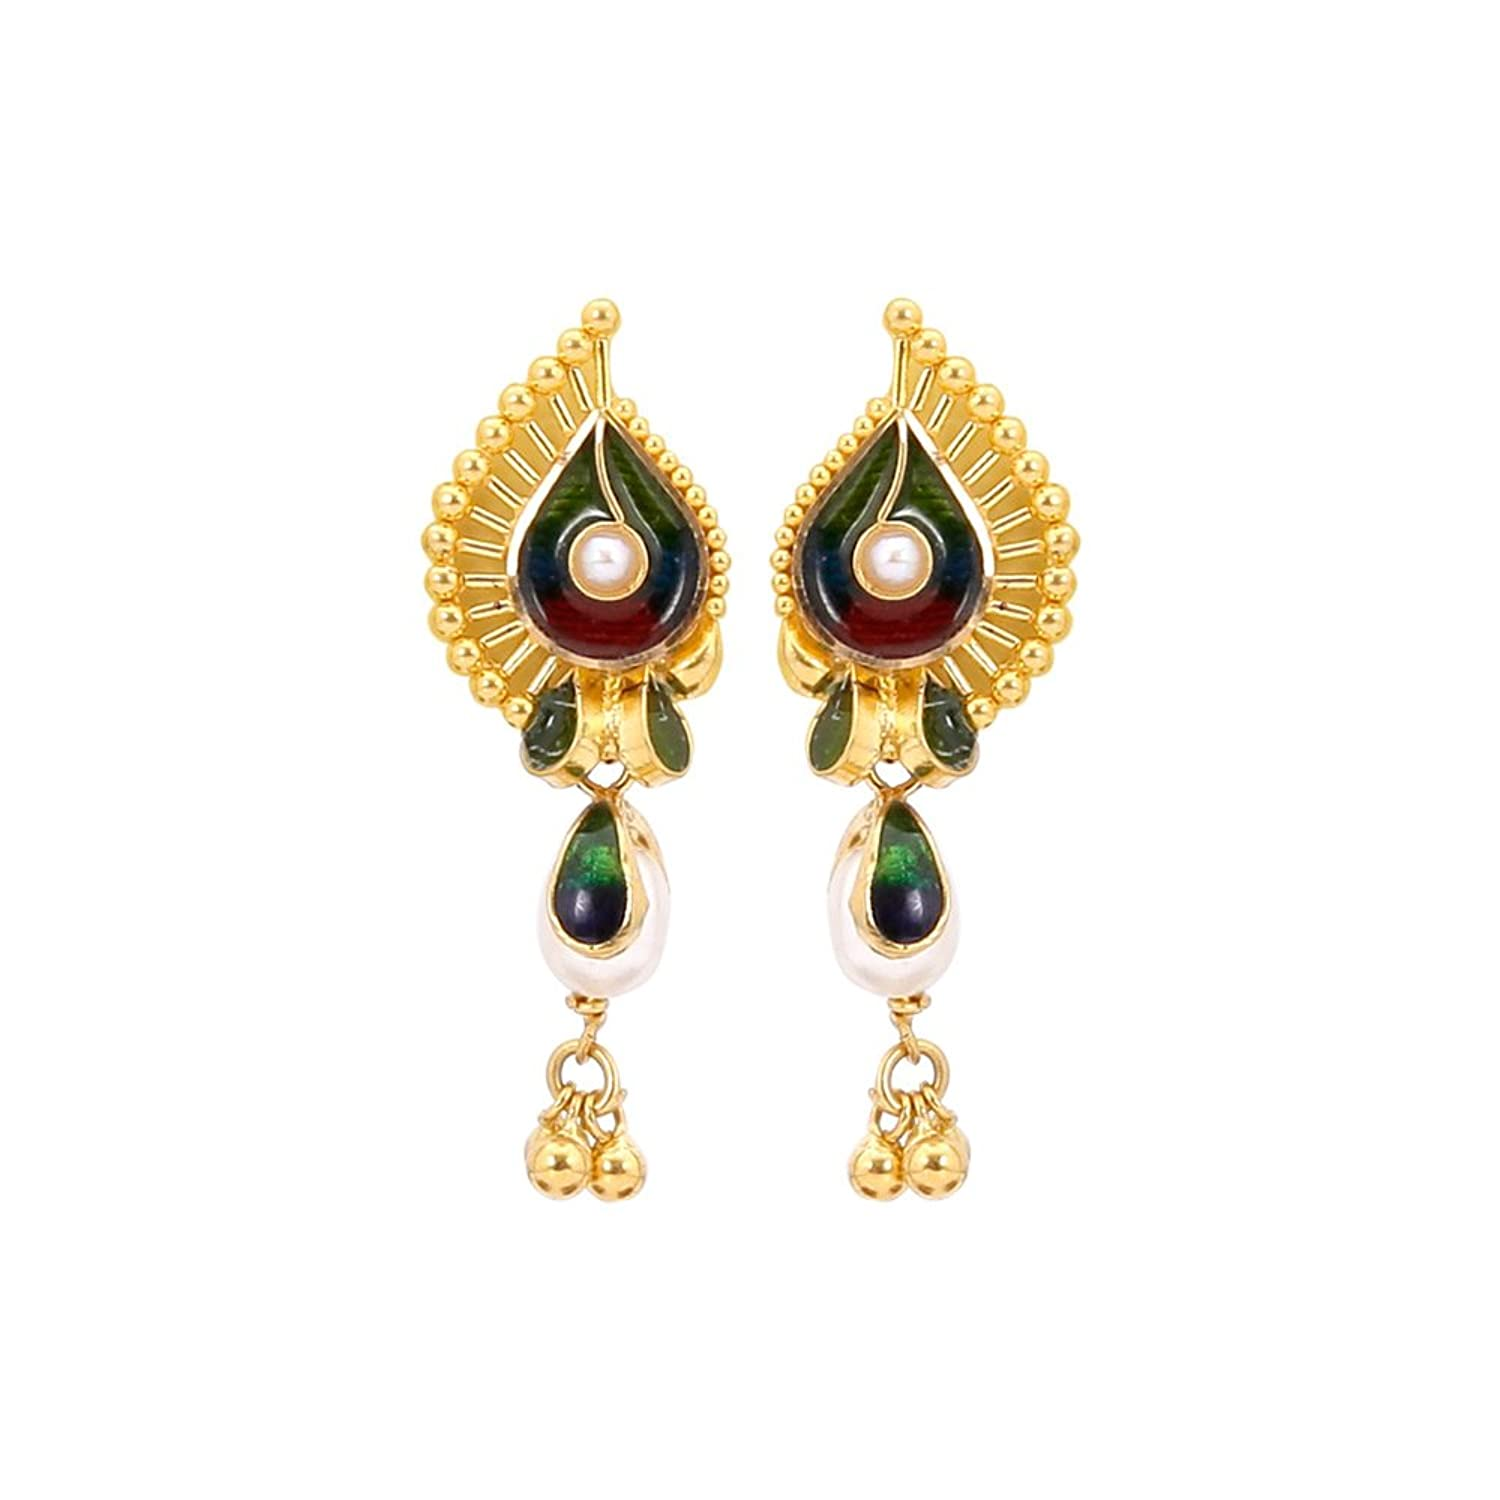 bhagat earrings with stud tictail plain post bhagatjewels handmade gold plated jewels brass